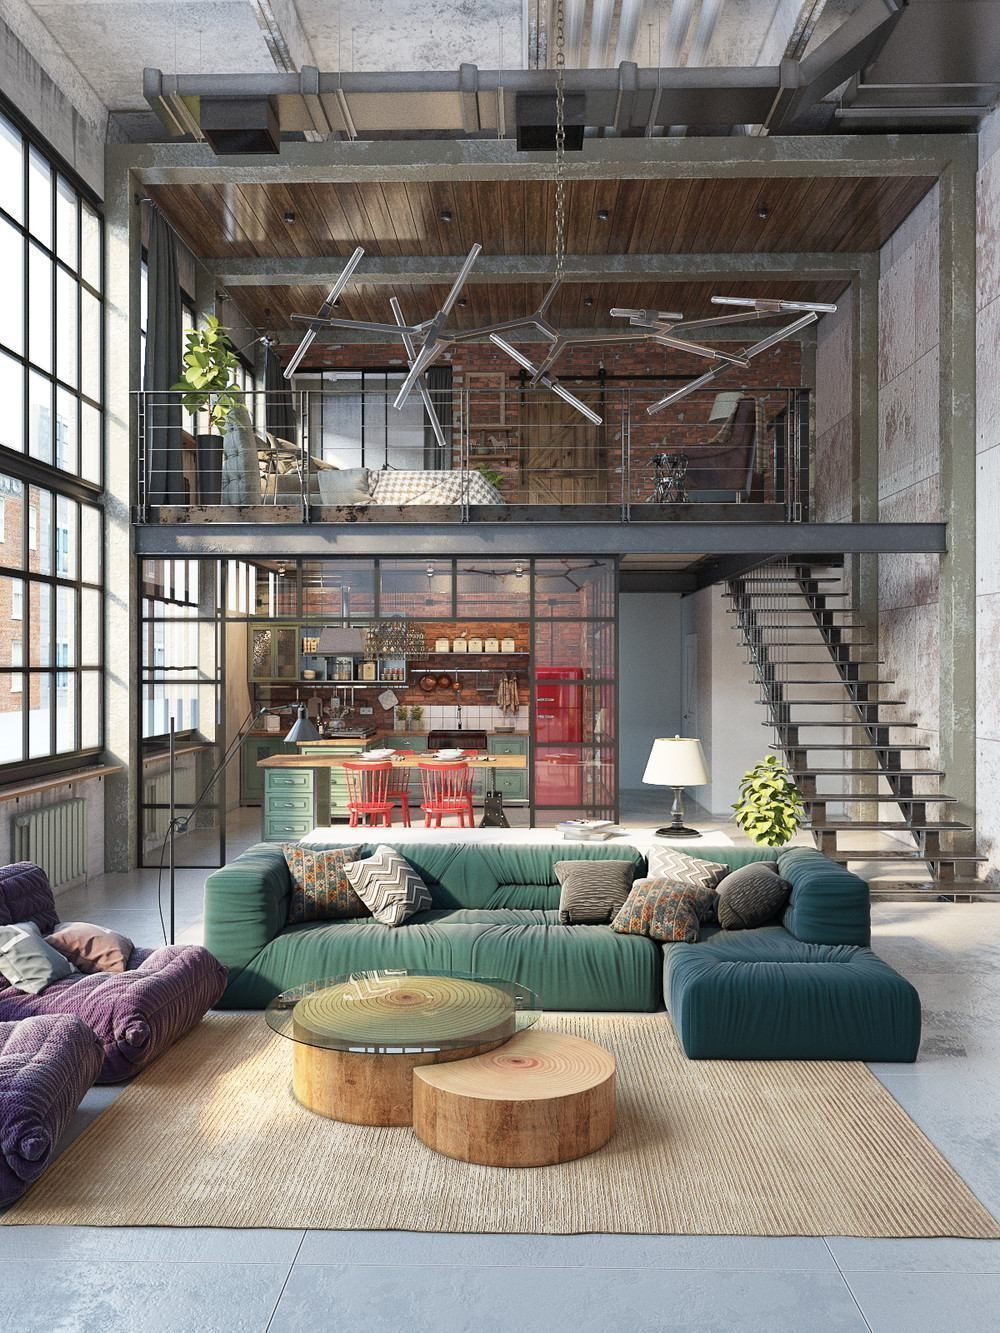 Awesome Industrial Style Home 22 In 2020 Loft Apartment Decorating Industrial Home Design Loft House